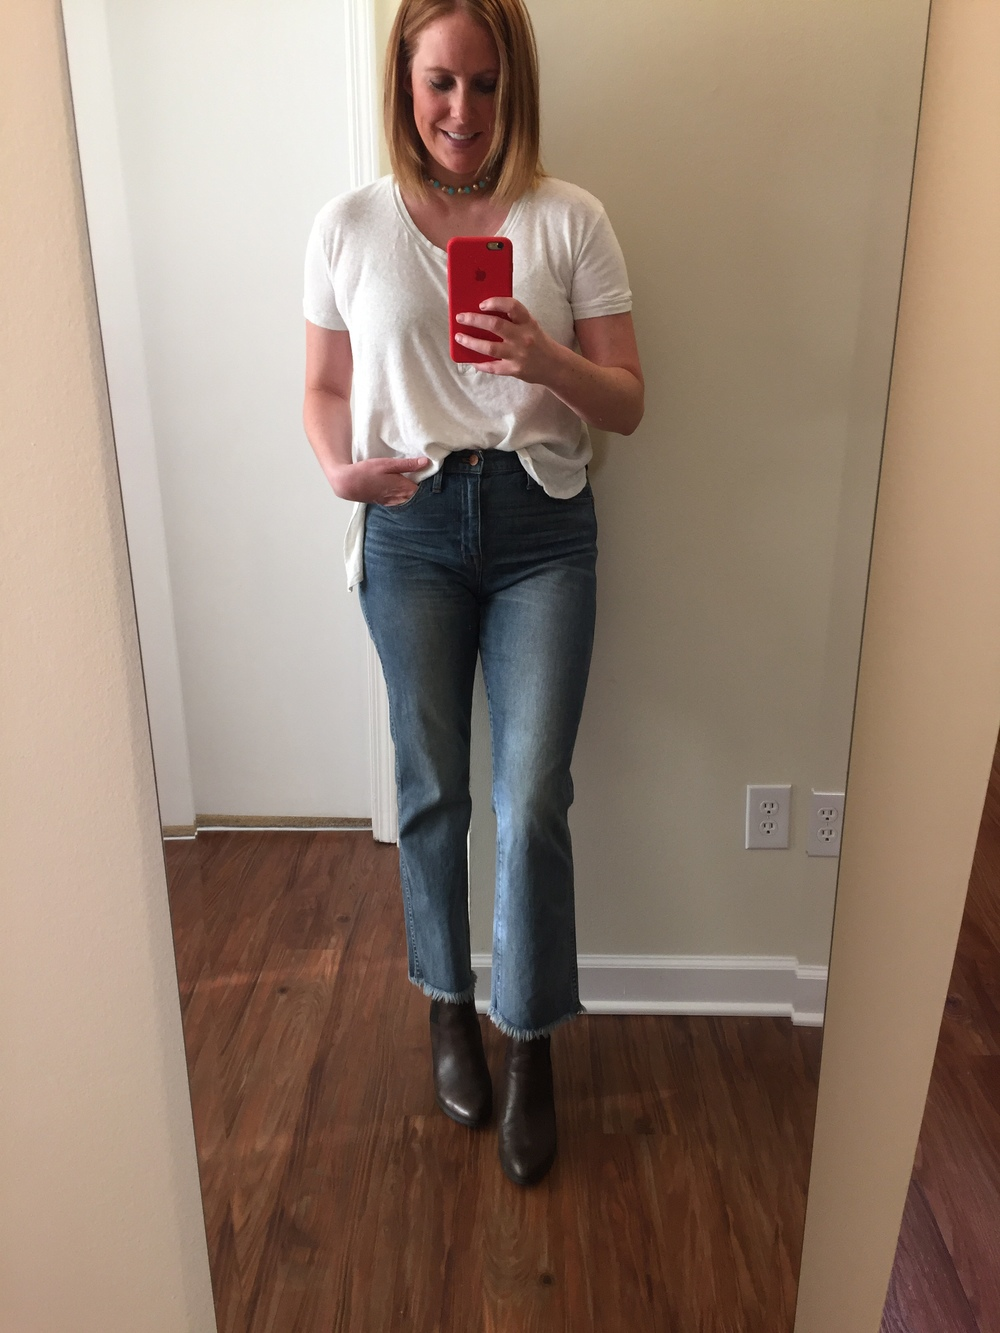 Top: Free People,  We The Free Downtown Girl Henley , Jeans: Madewell,  cali demi-boot jeans , Booties: Clarks,  Kadri Liana , Choker: Broadripple Vintage